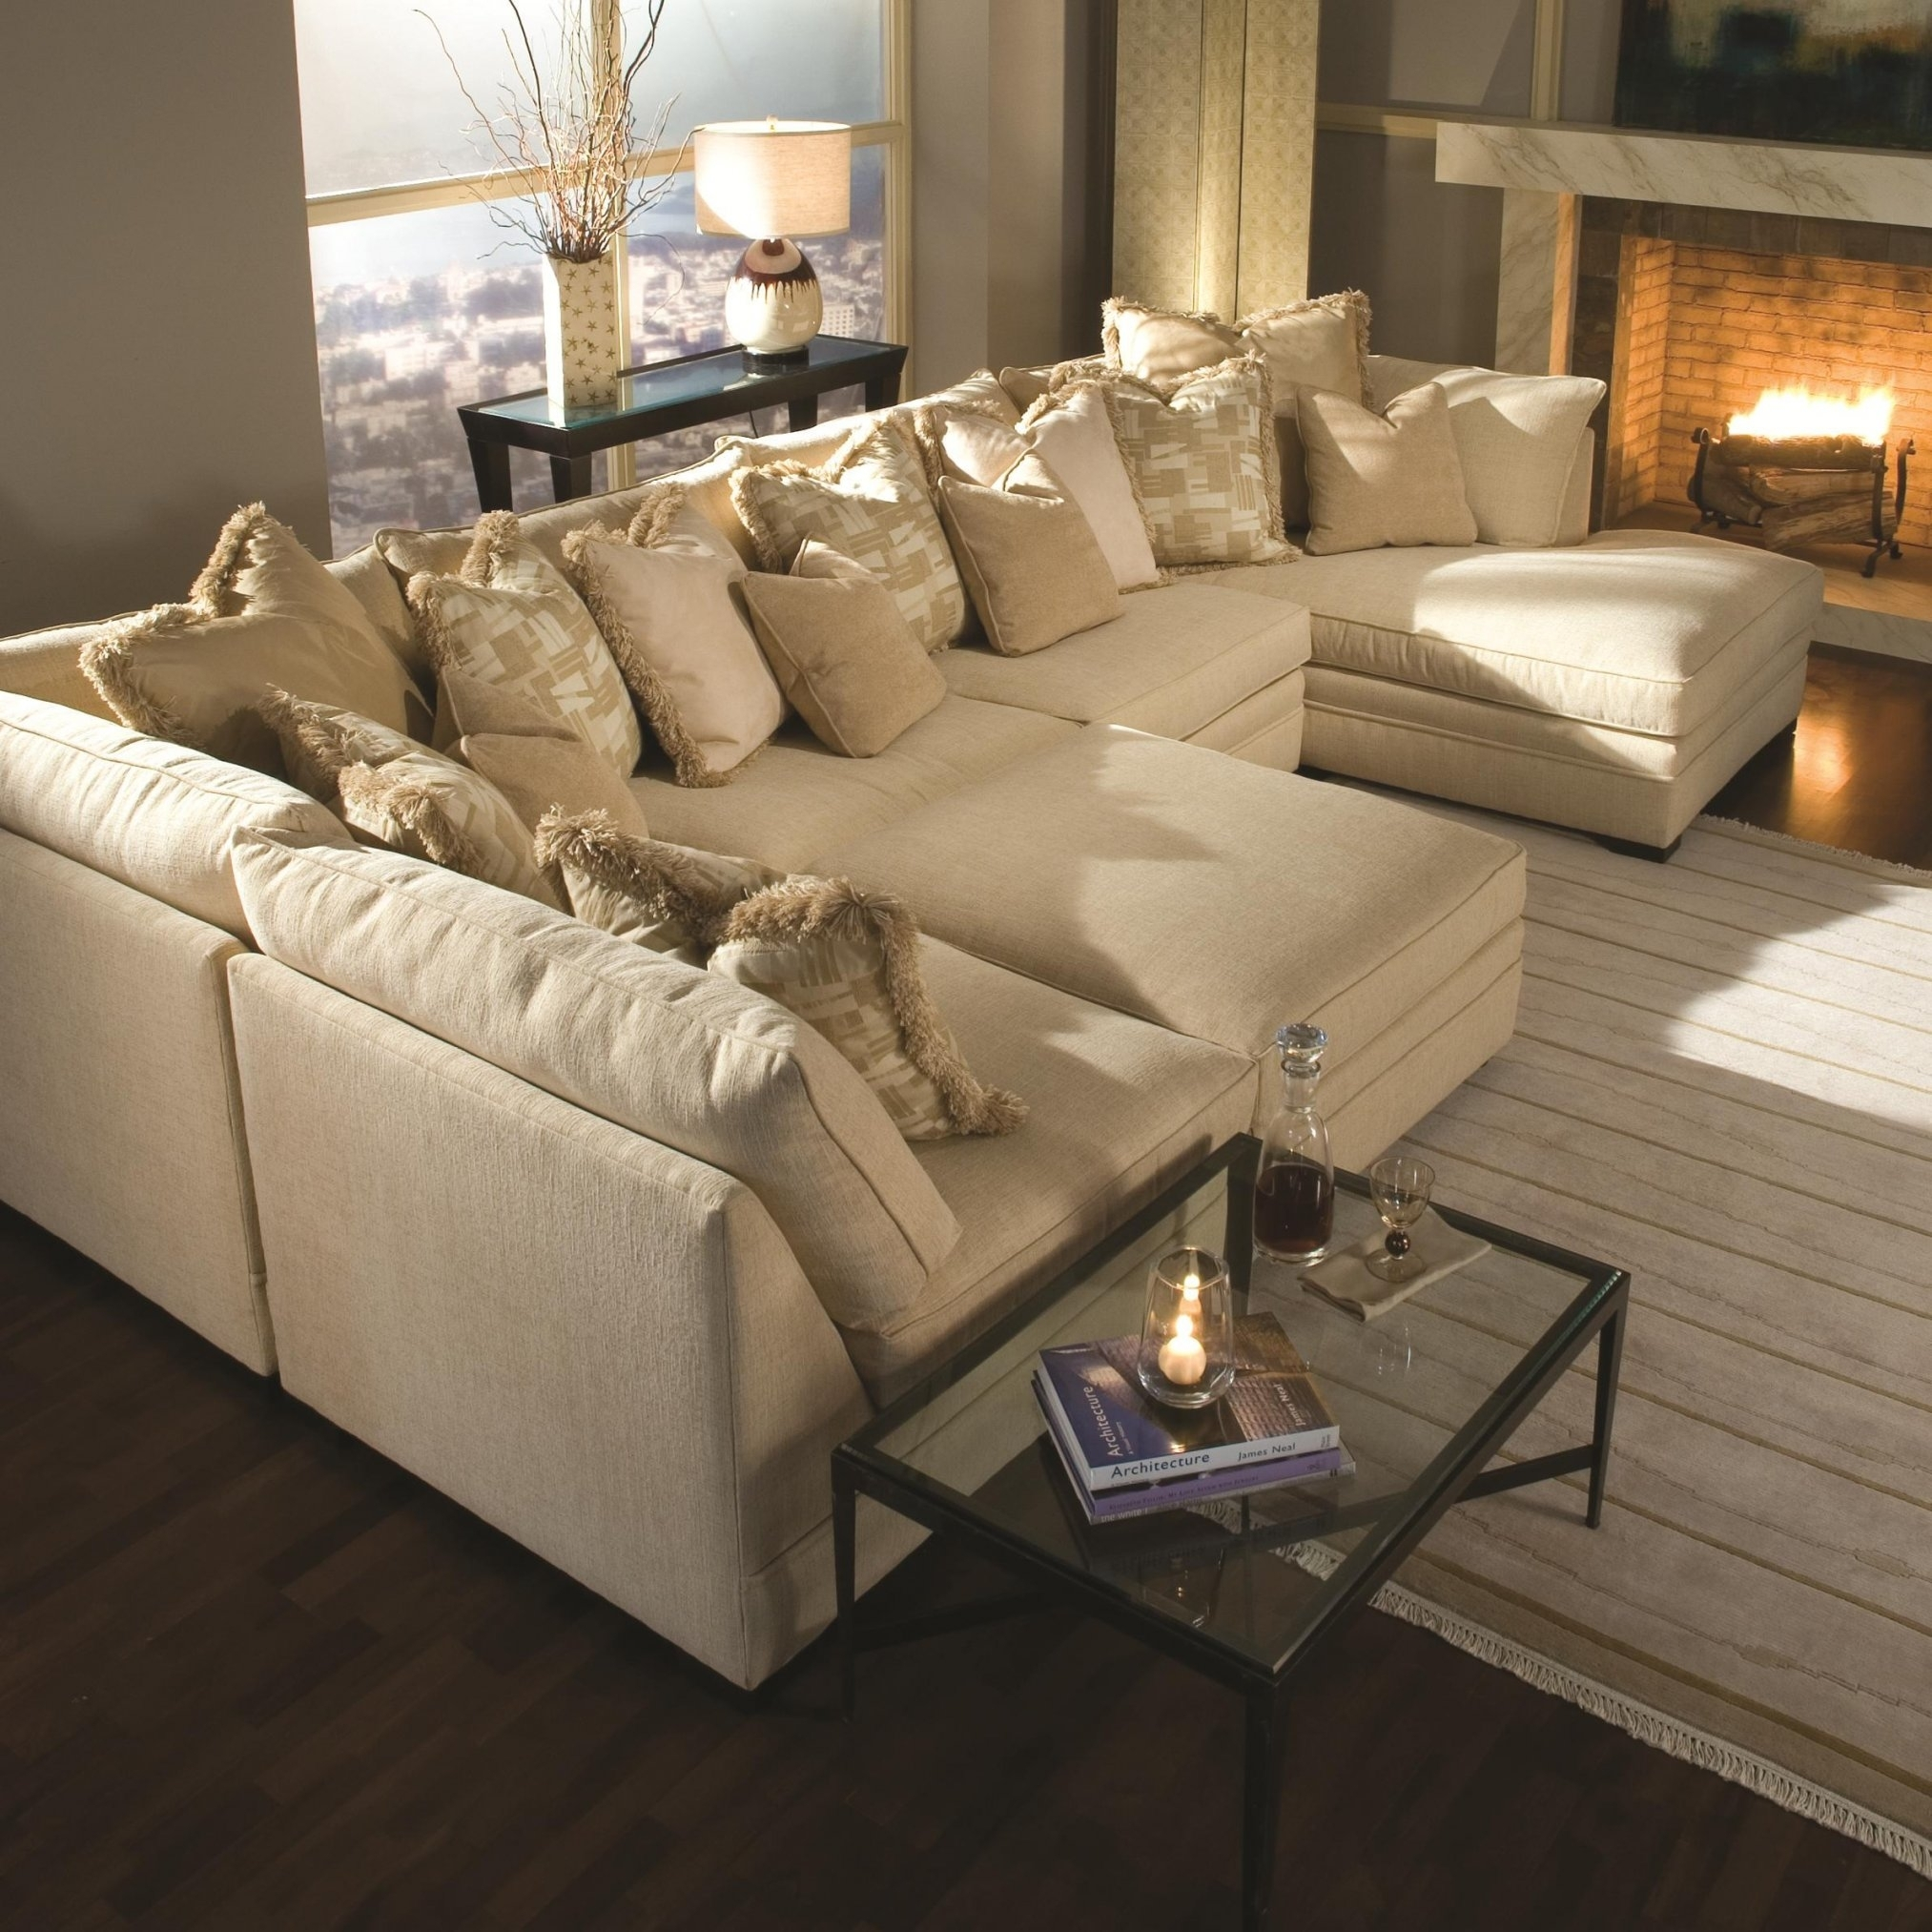 Sofa : Doublehaise Lounge Sectional Sofa Wide With pertaining to Wide Sectional Sofas (Image 10 of 10)